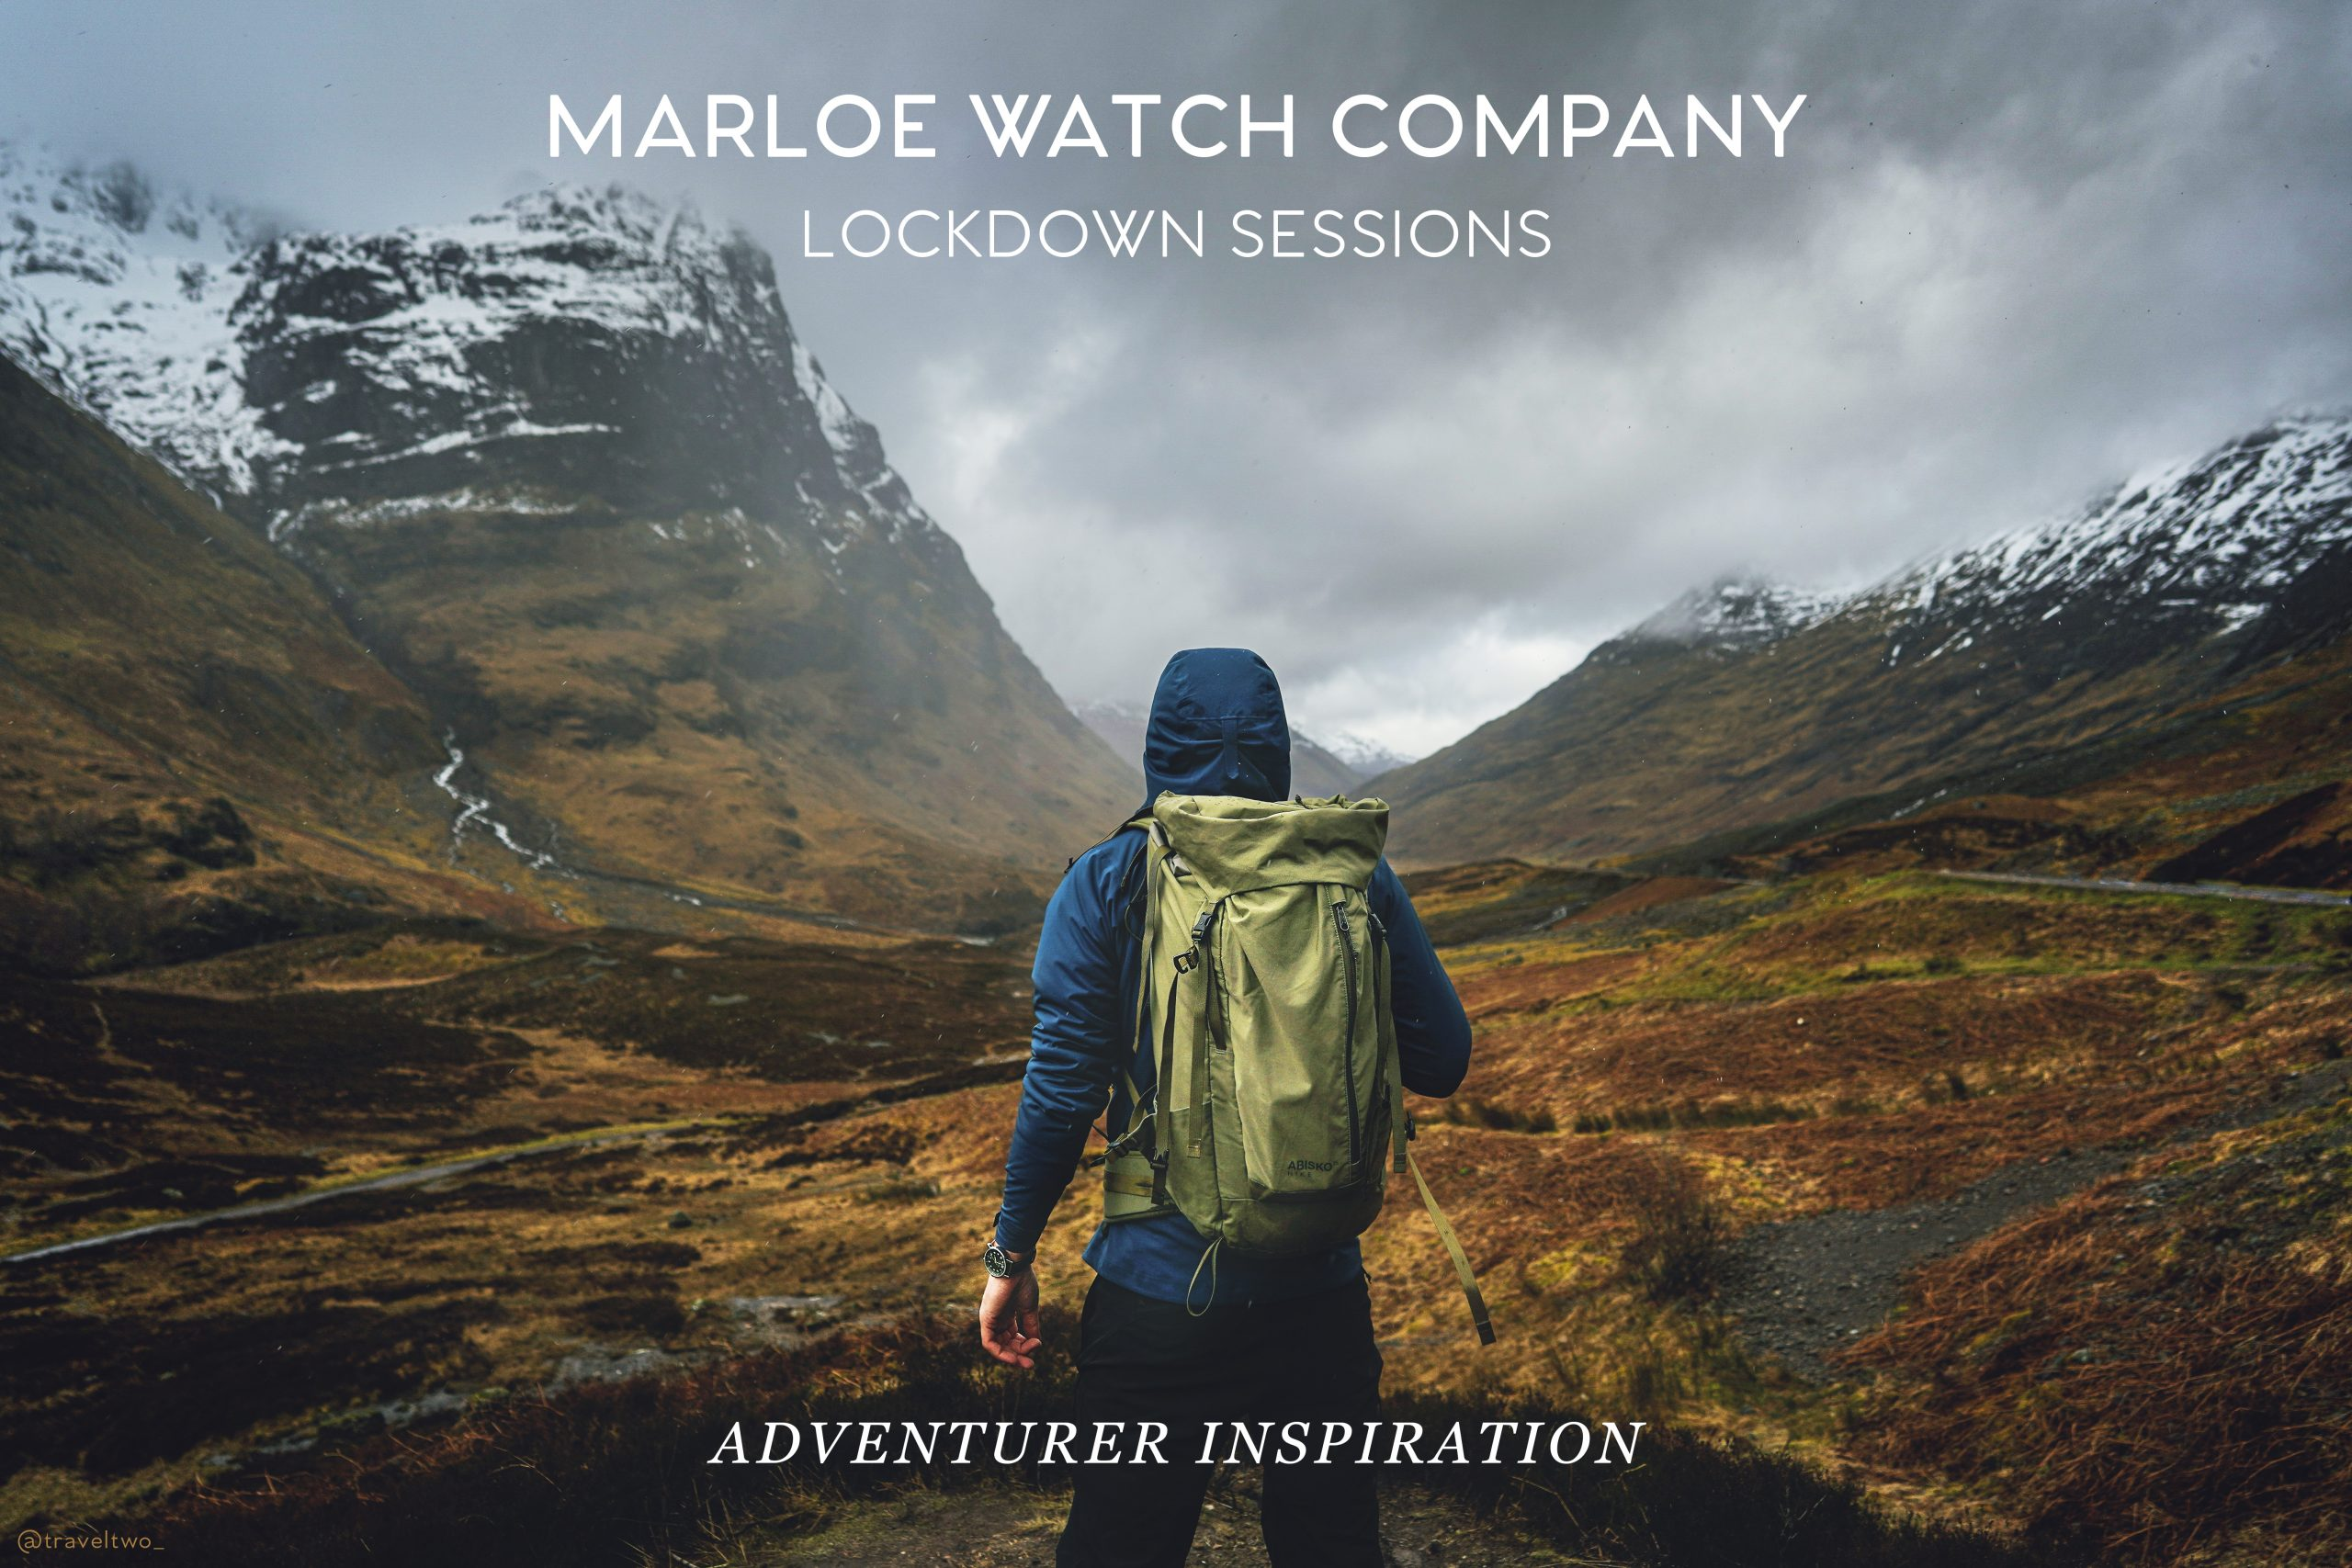 Tune in for the Marloe Watch Company 'Lockdown Sessions'